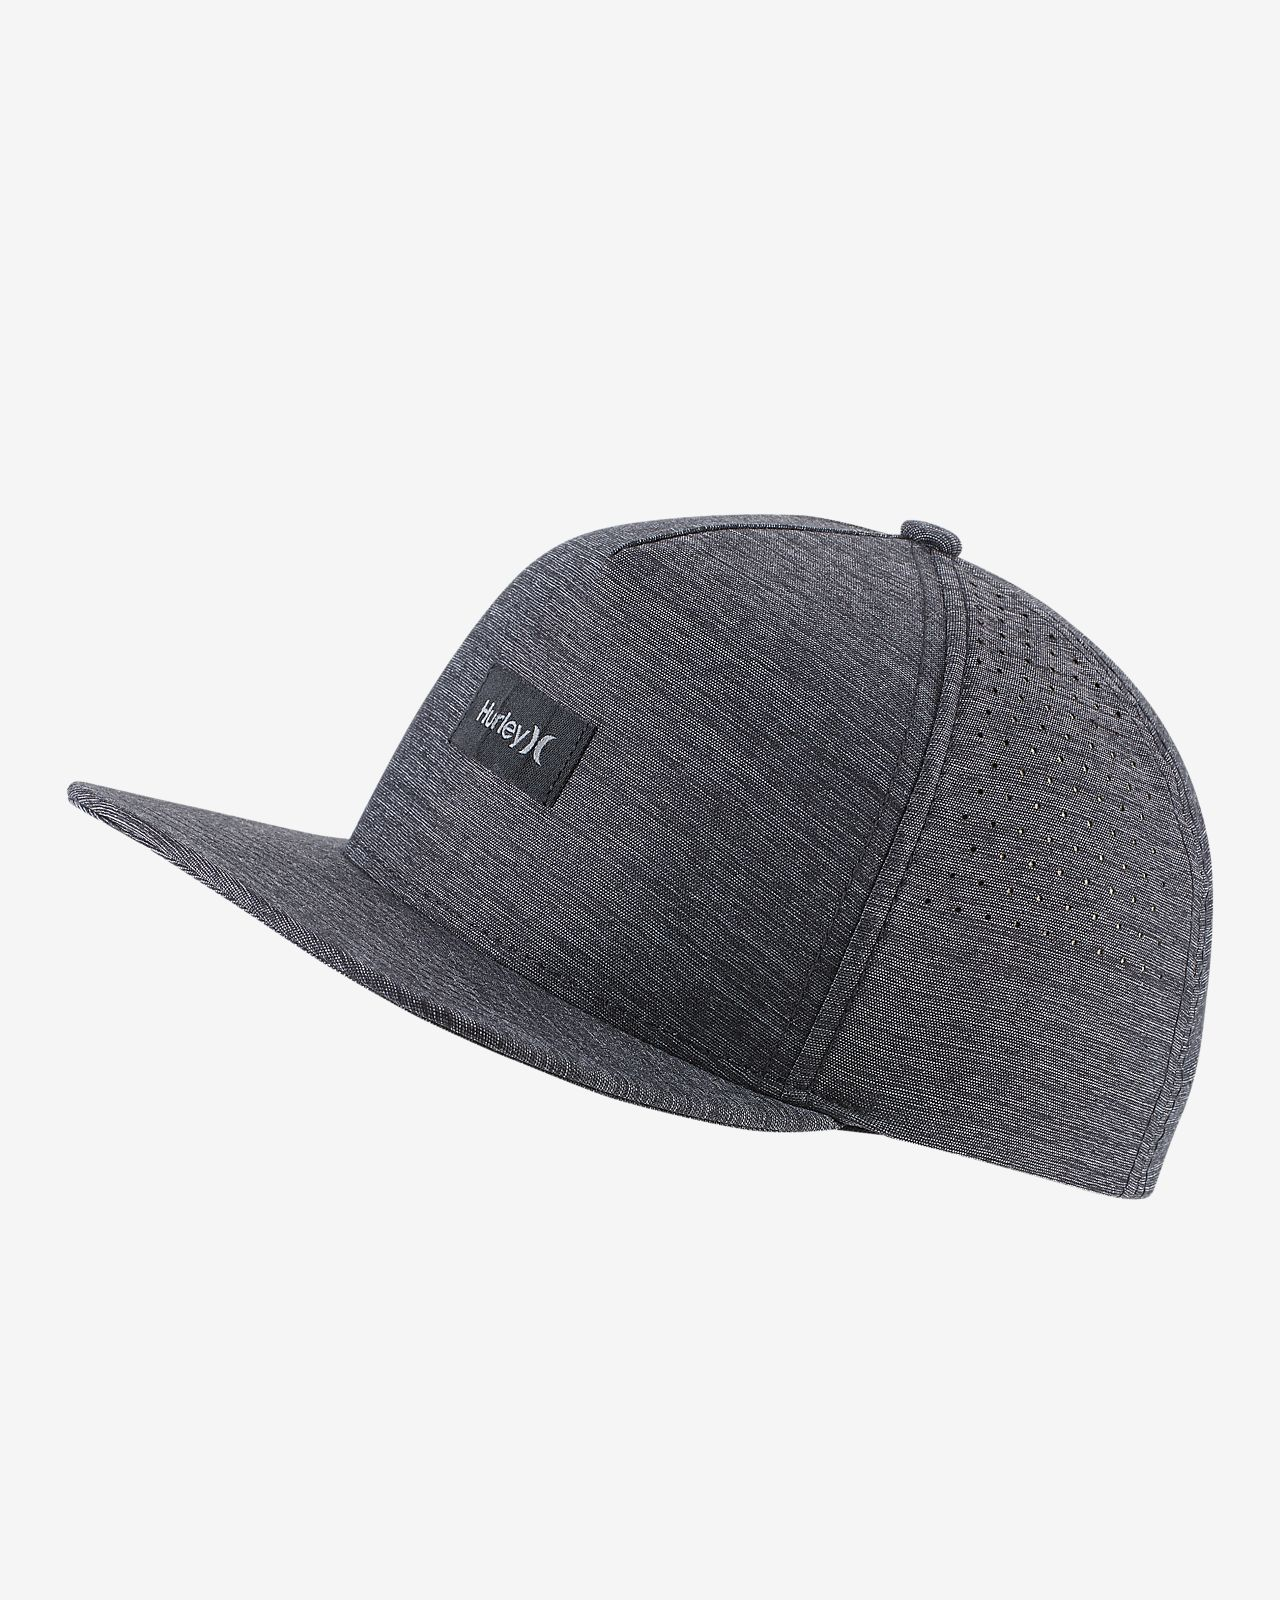 7feb300f9e133 Hurley Dri-FIT Staple Adjustable Hat. Nike.com